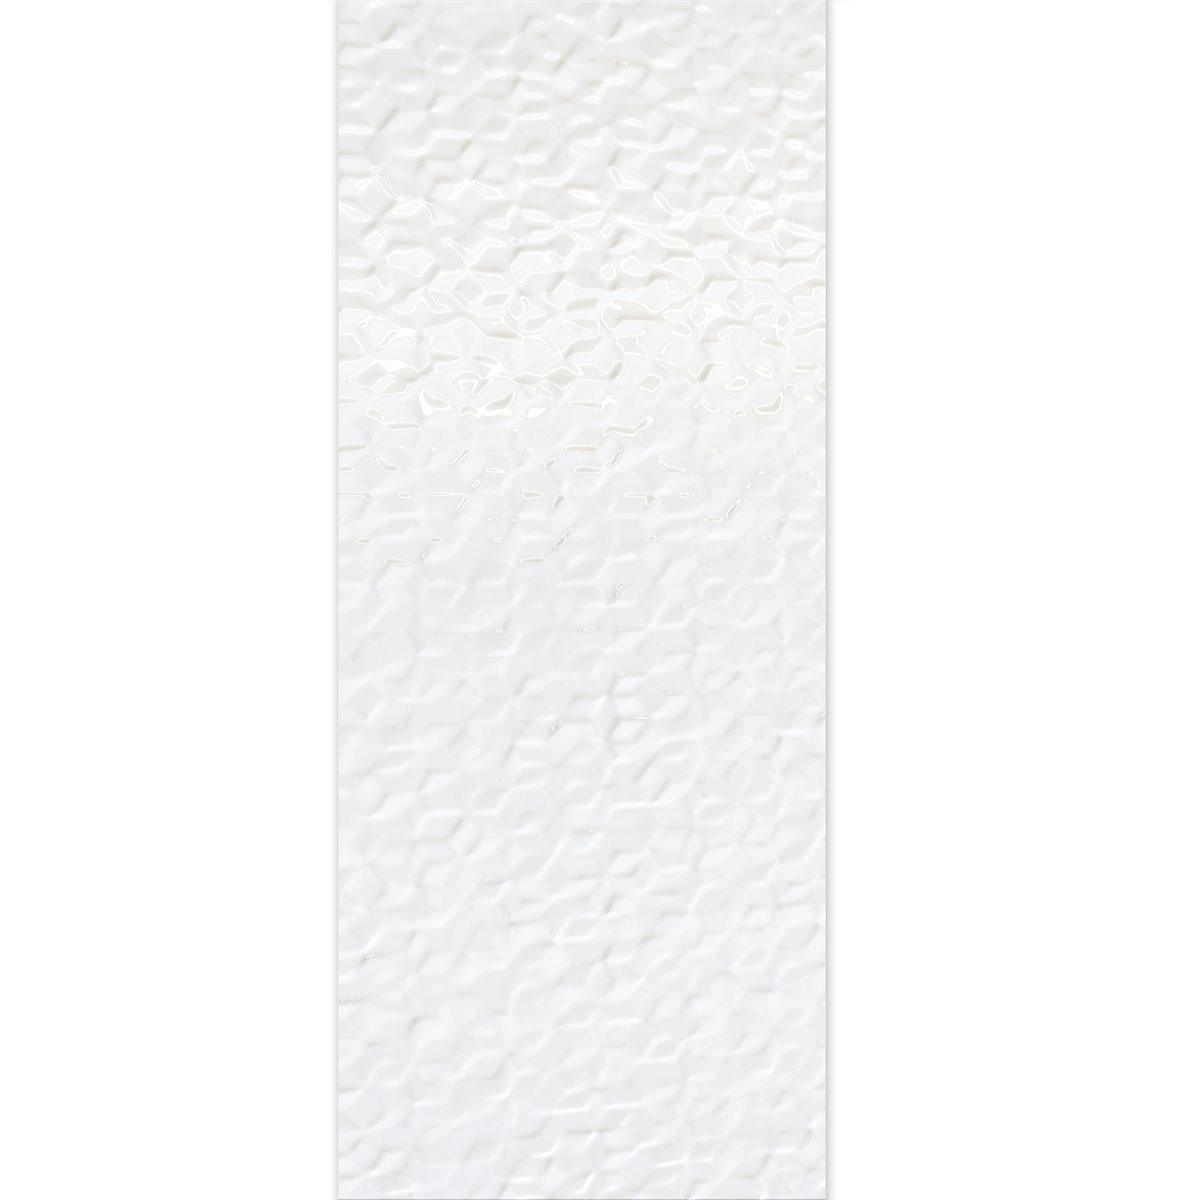 Carrelage mural structur blanc brillant 30x90cm lz69282 for Carrelage en anglais